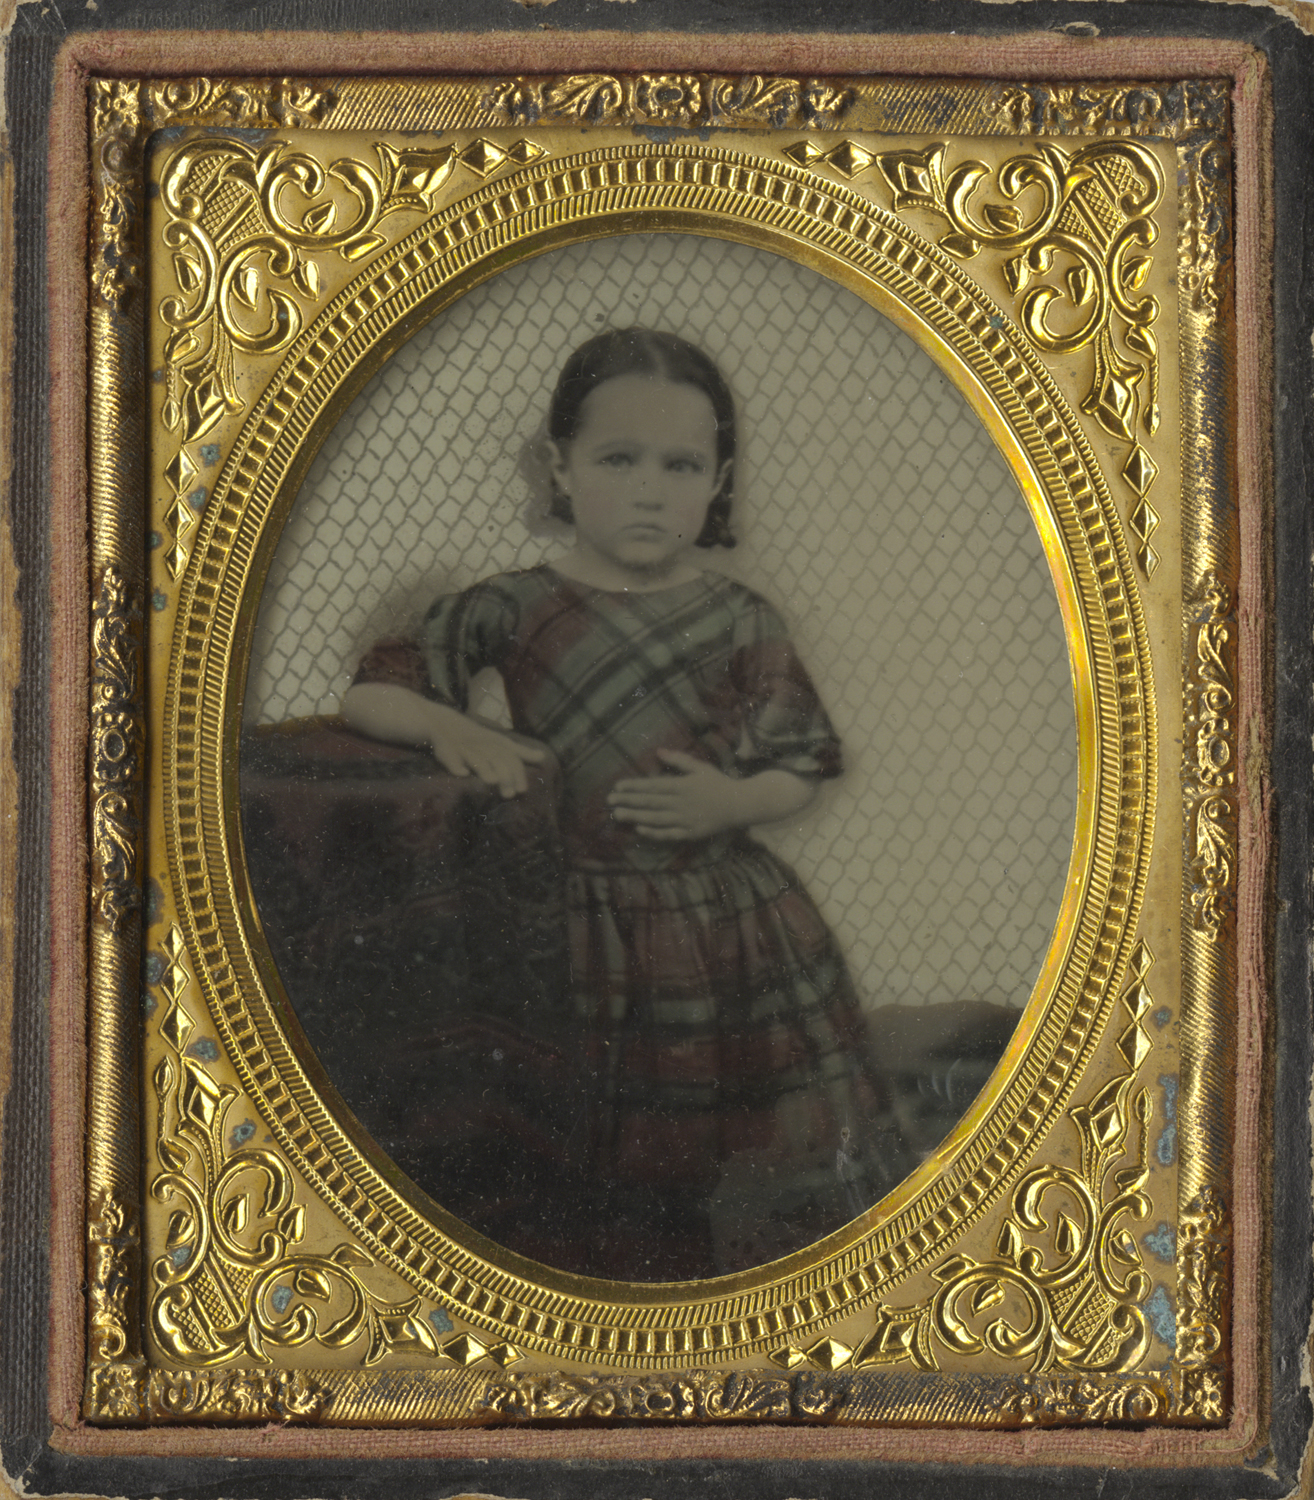 Portrait of a Young Girl in a Gingham Dress